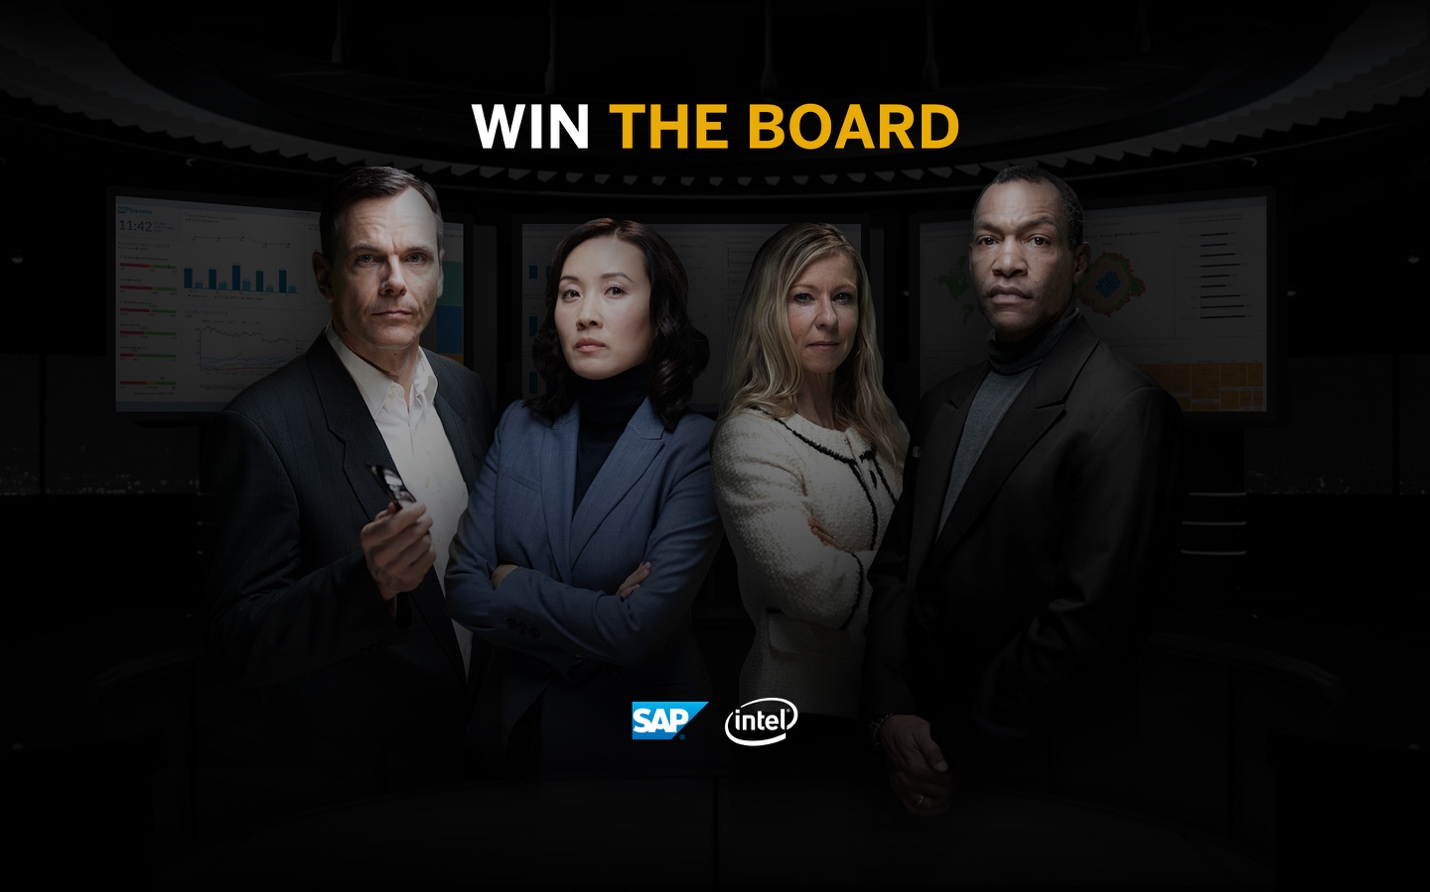 Win the board with logos, all 4 people